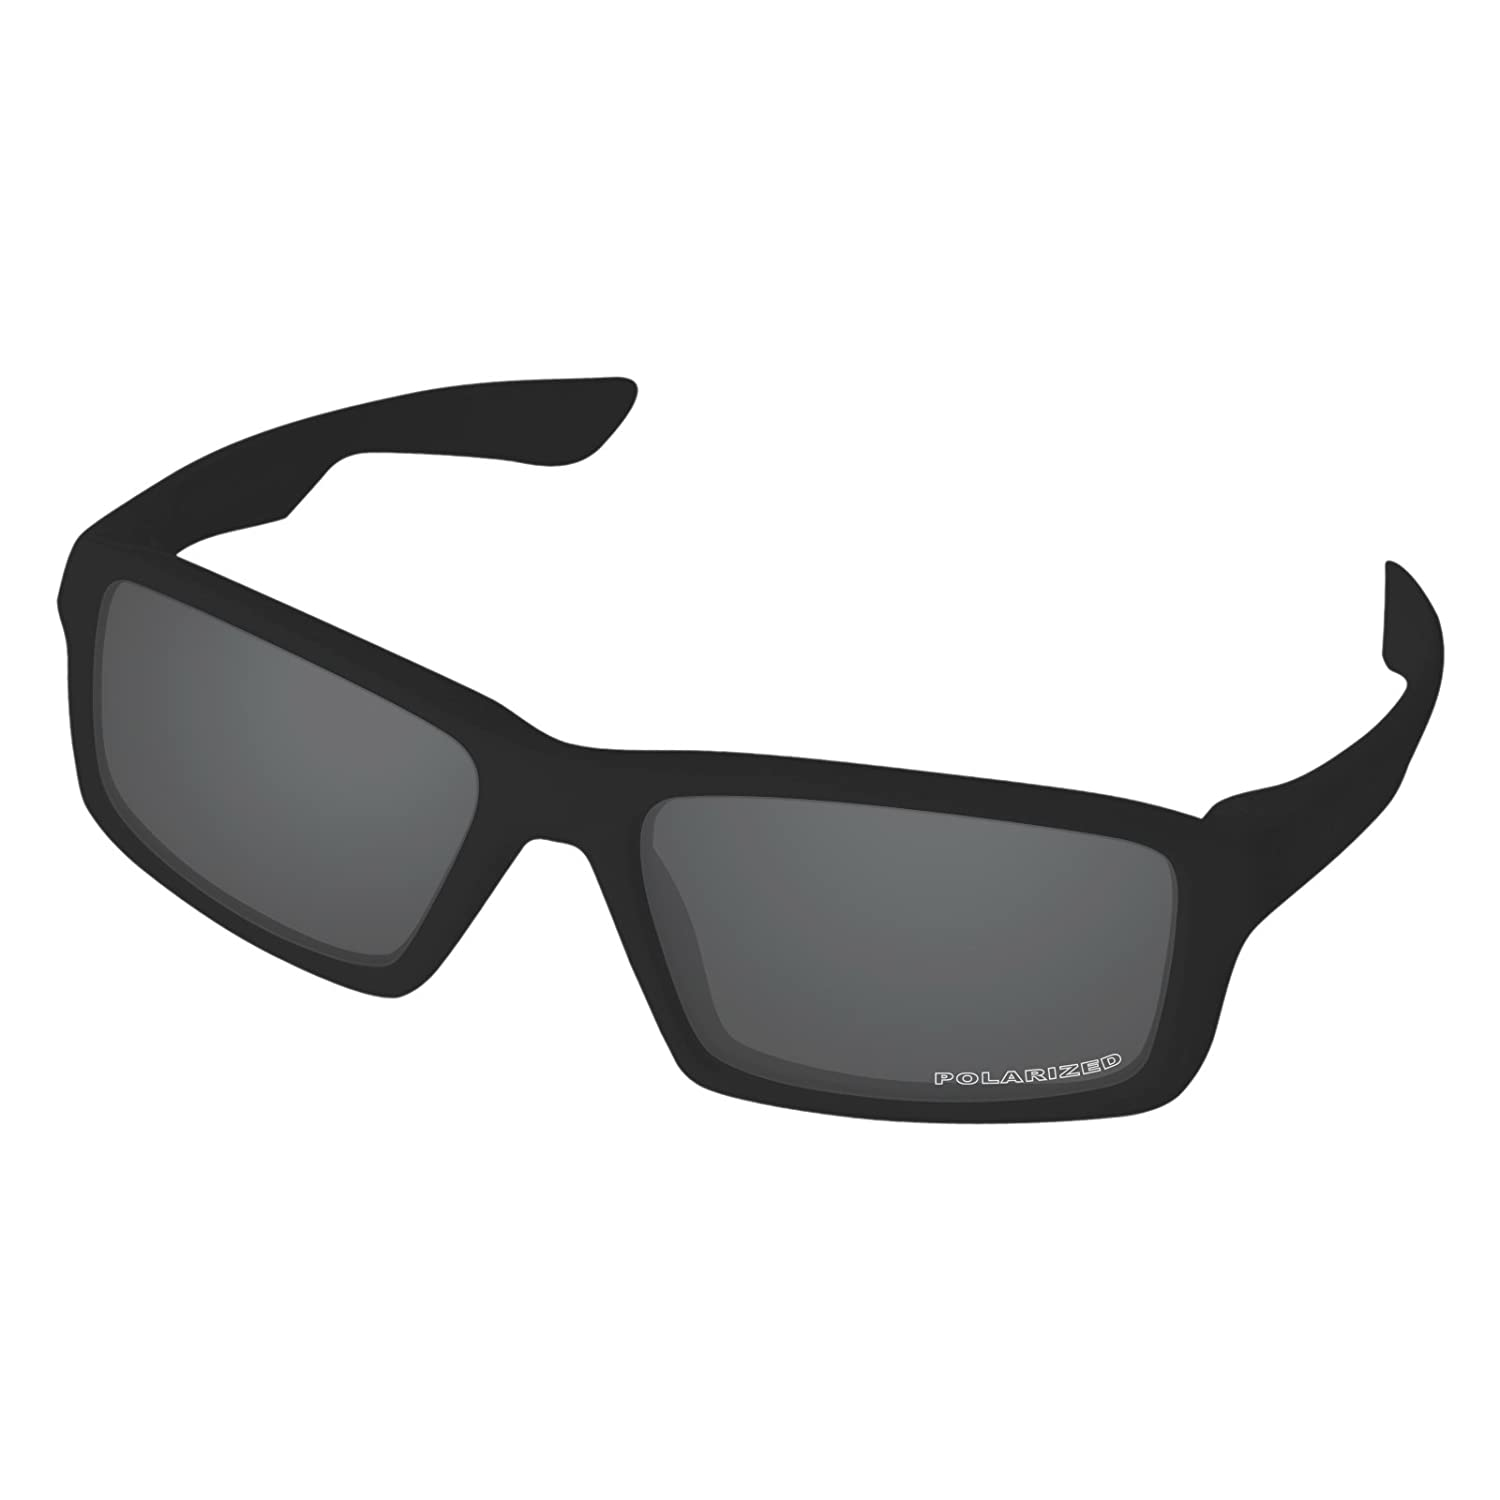 9e0cf0a945 Amazon.com  Tintart Performance Replacement Lenses for Oakley Twitch  Sunglass Polarized Etched-Carbon Black  Clothing